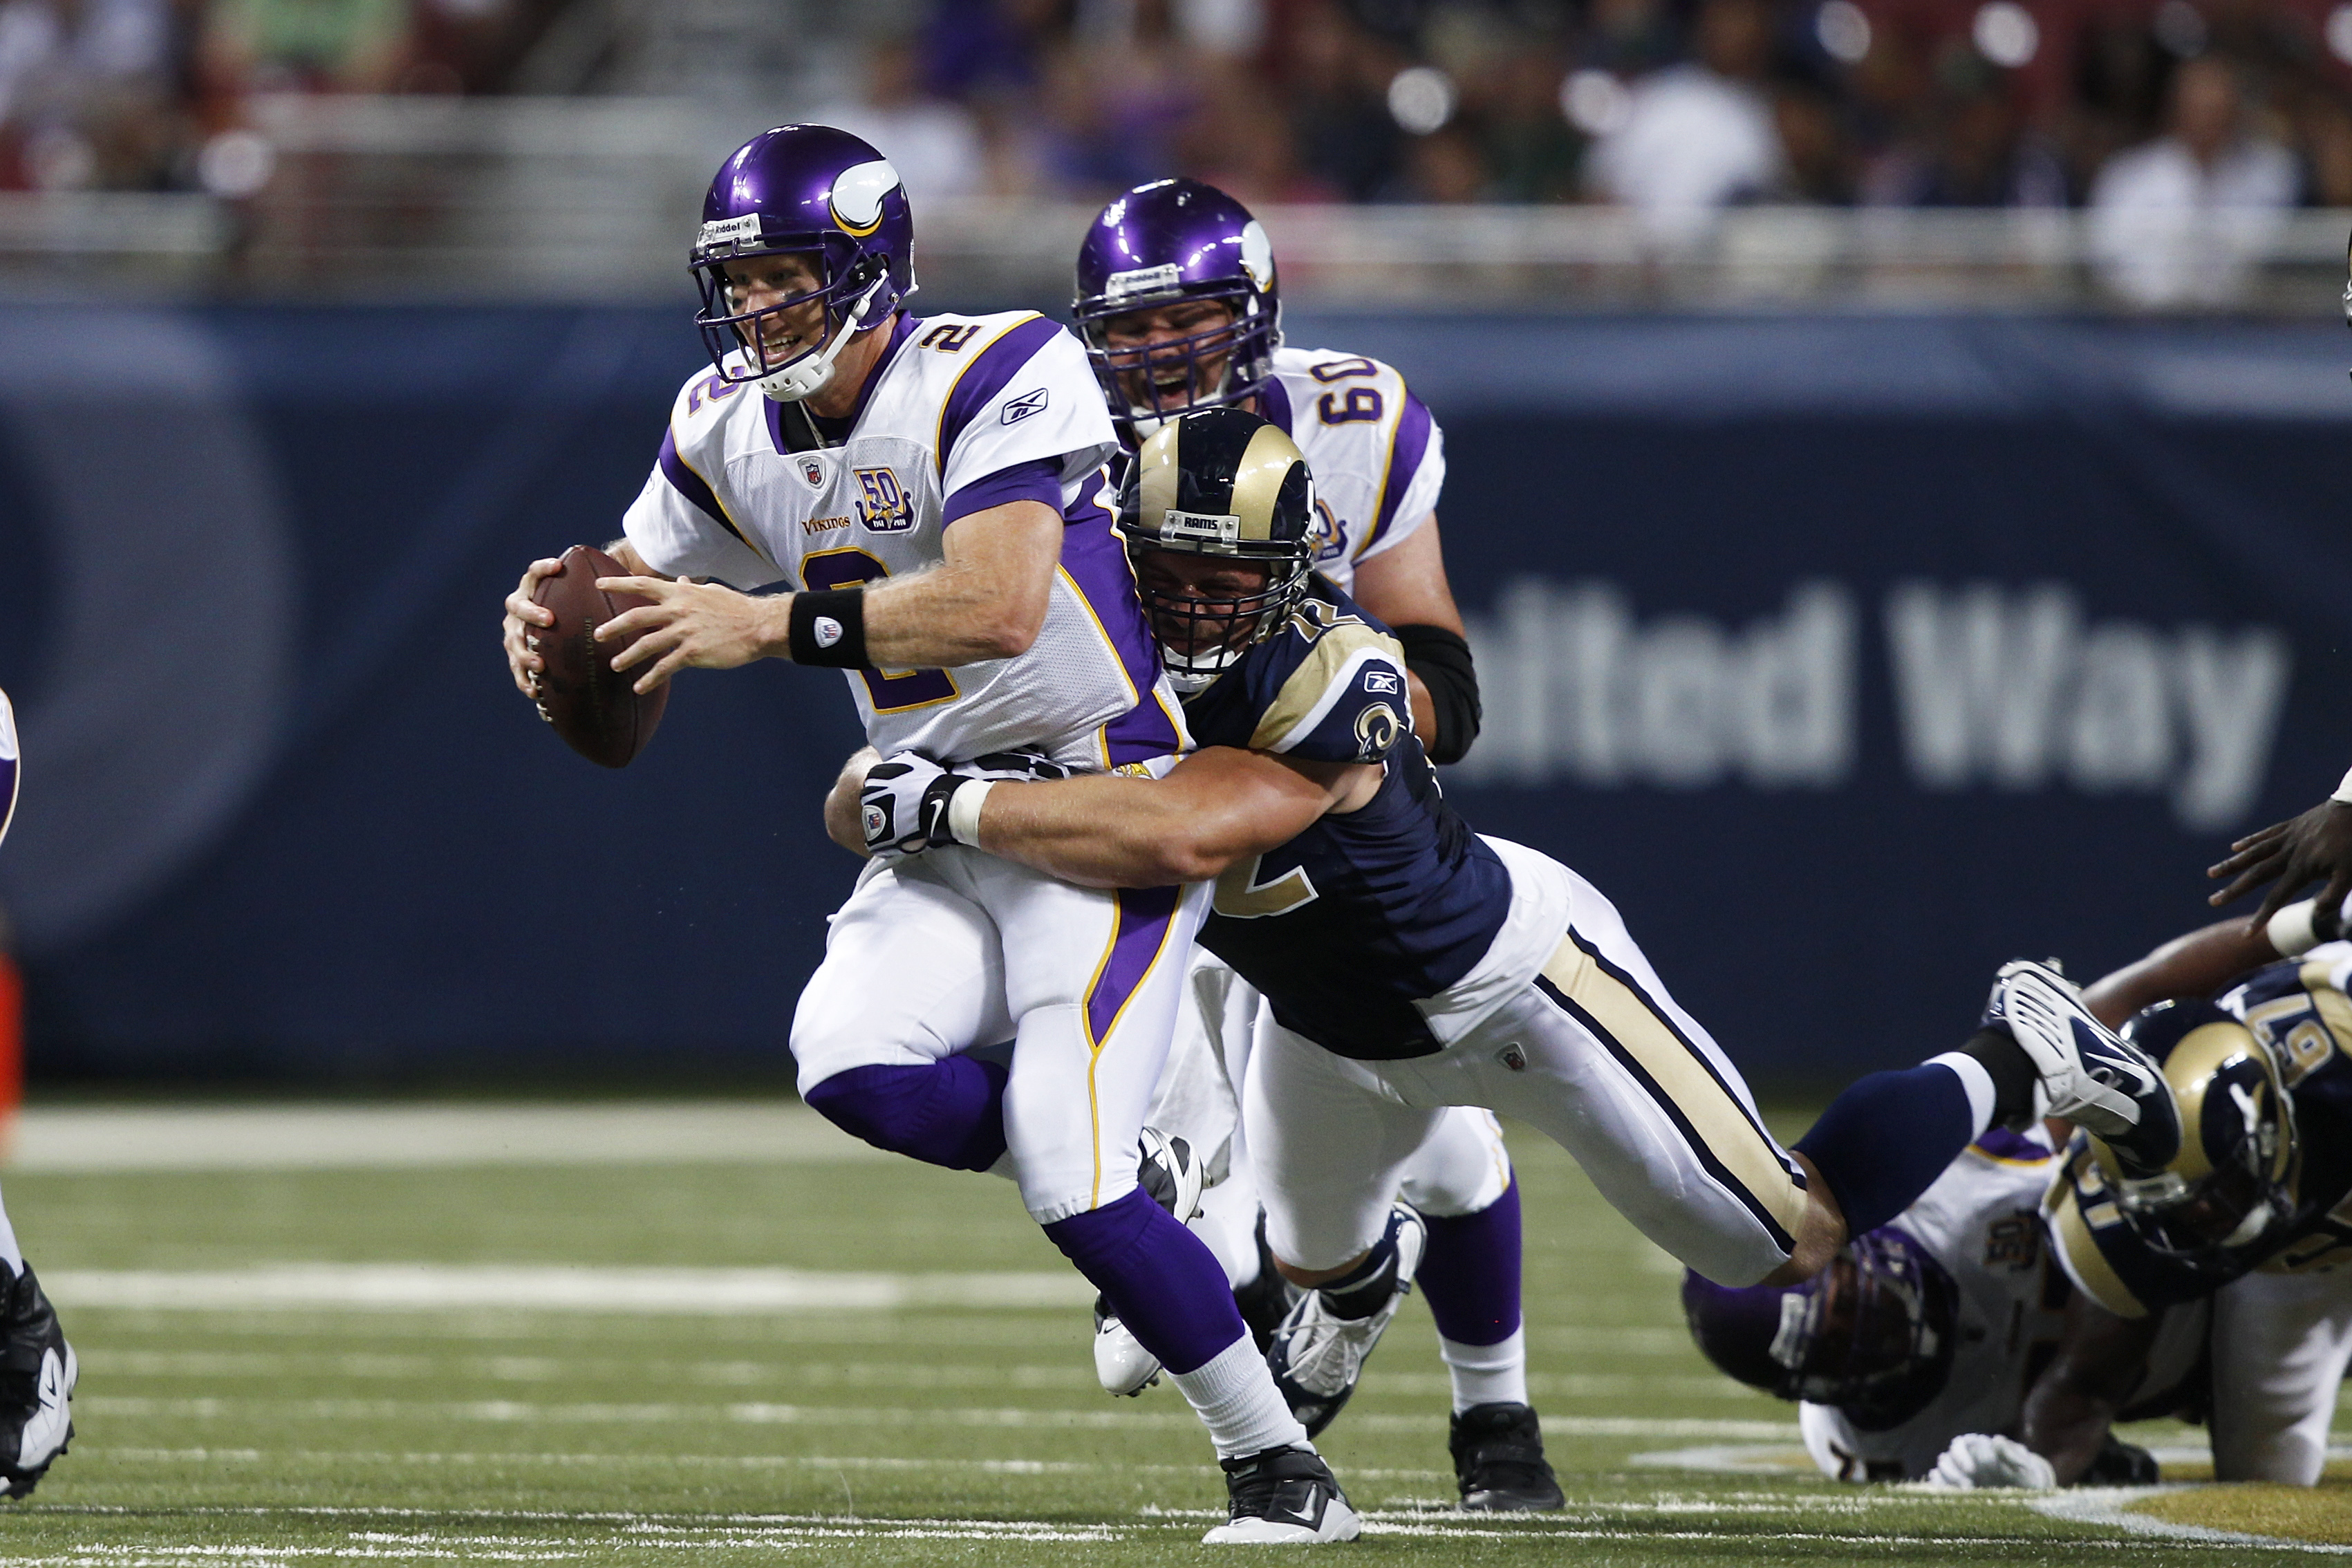 ST. LOUIS, MO - AUGUST 14: Sage Rosenfels #2 of the Minnesota Vikings gets sacked by Chris Long #72 of the St. Louis Rams during the preseason game at Edward Jones Dome on August 14, 2010 in St. Louis, Missouri. (Photo by Joe Robbins/Getty Images)